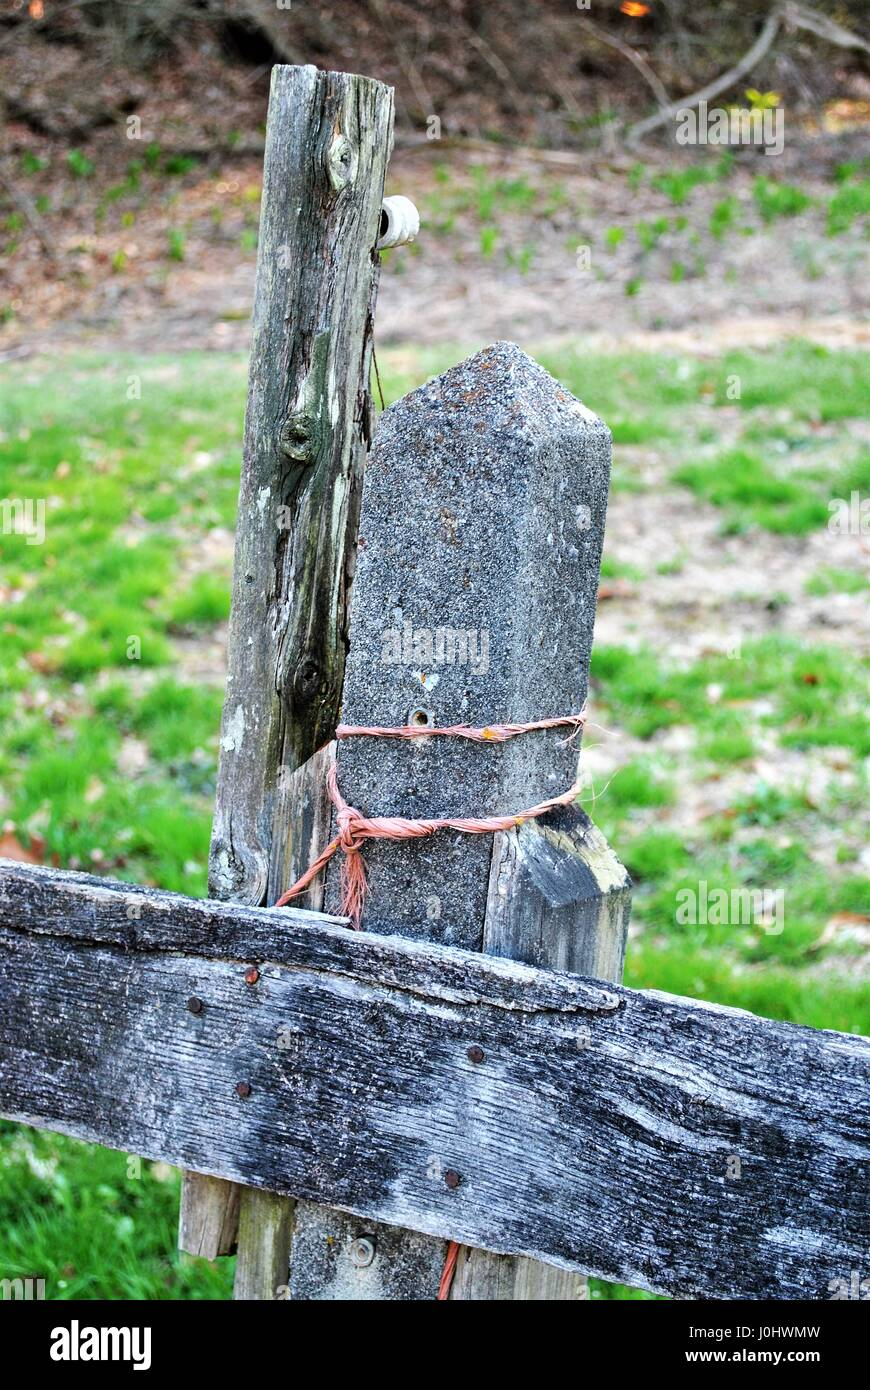 Cement post holding up fence Stock Photo: 138076313 - Alamy